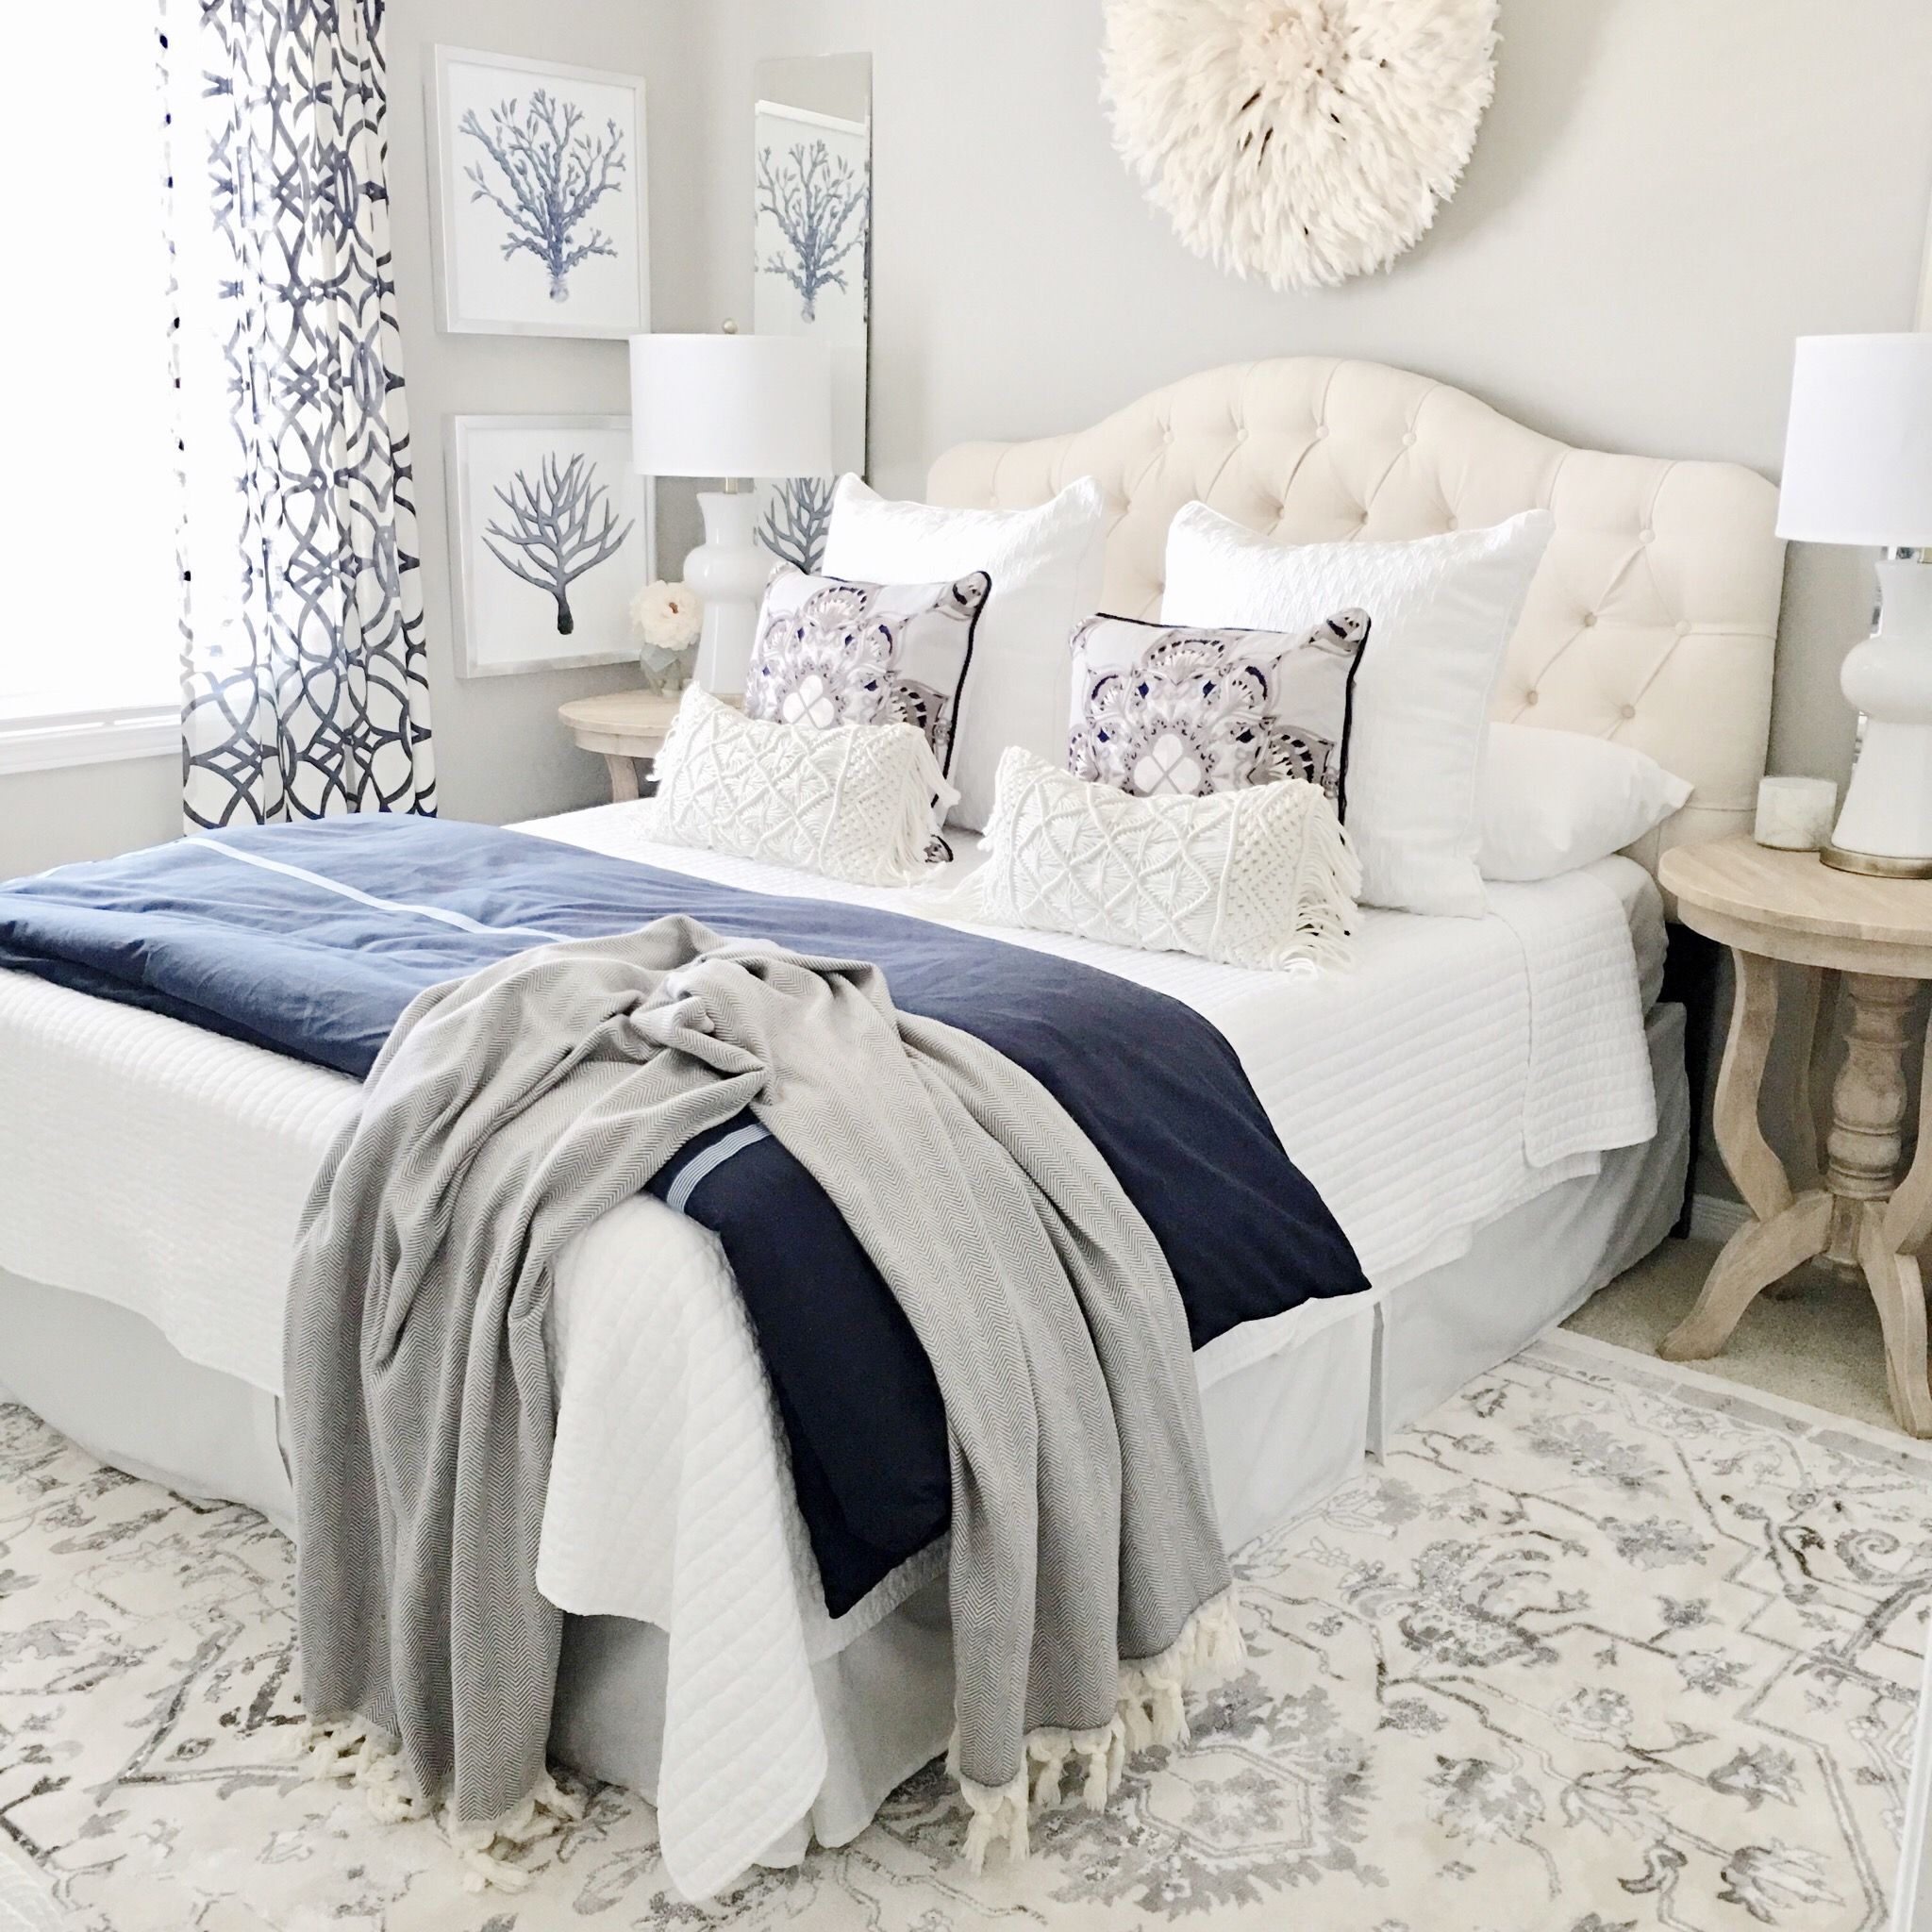 How To Decorate With Pantone Color Of The Year 2020 Classic Blue In 2020 White Bedroom Decor Stylish Bedroom Bedroom Decor